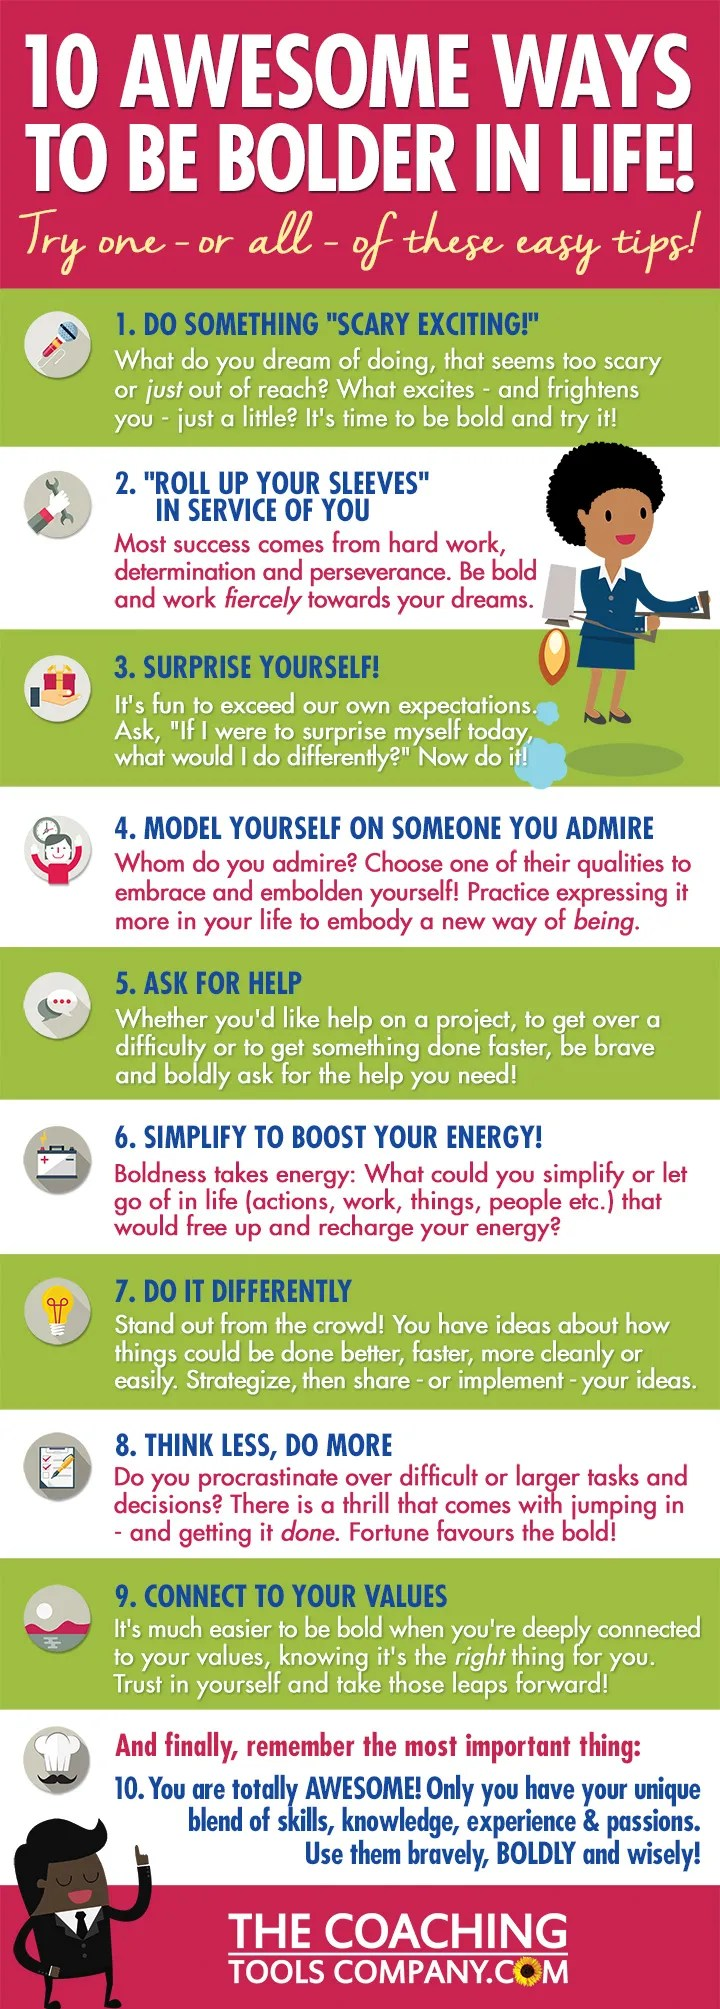 10 Ways to be Bolder in Life